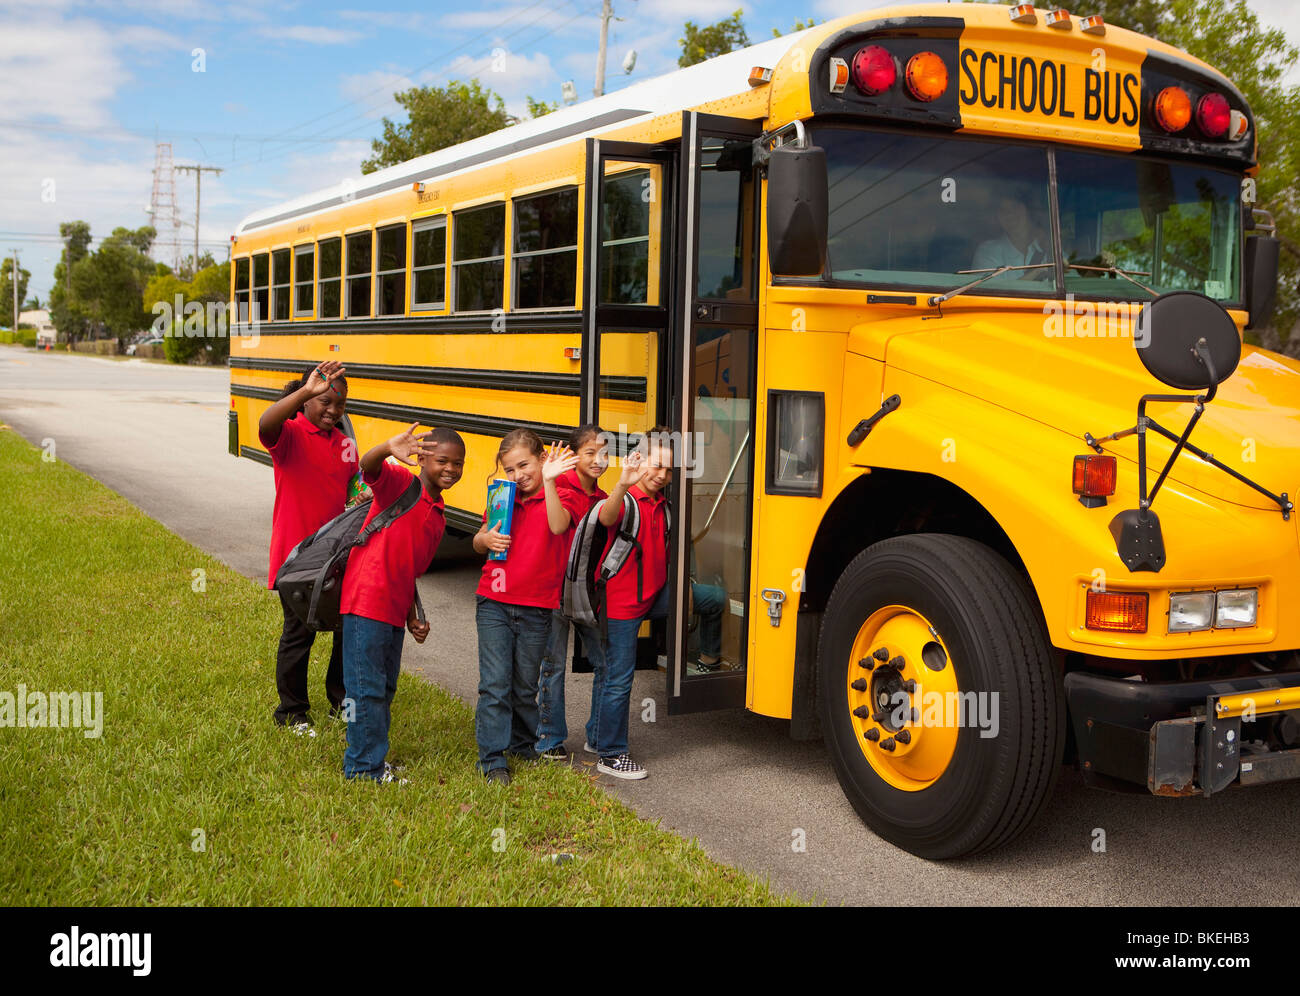 Students Lining Up To Get On The School Bus - Stock Image